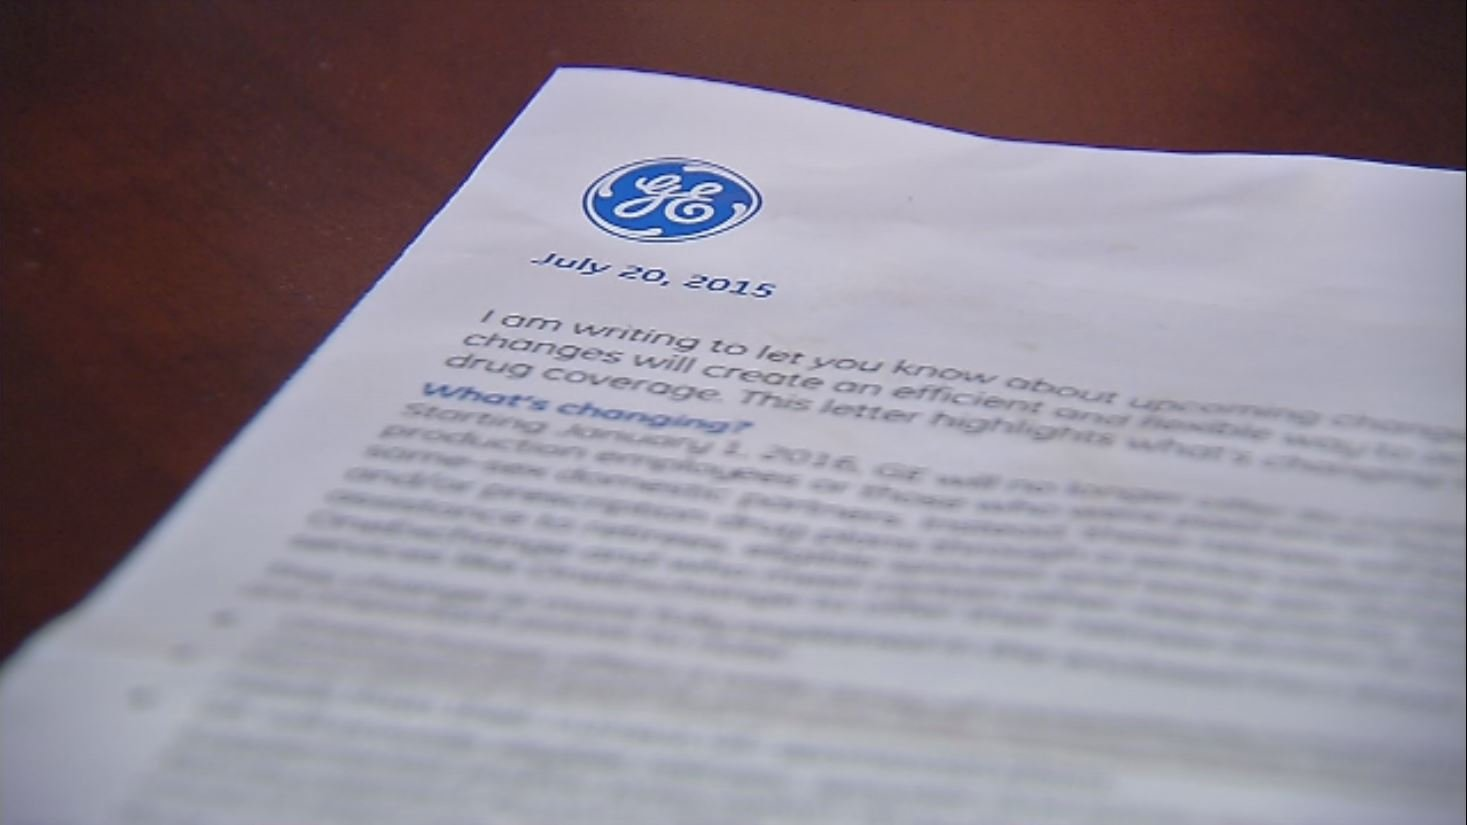 Letter from GE to hourly retirees, July 20, 2015